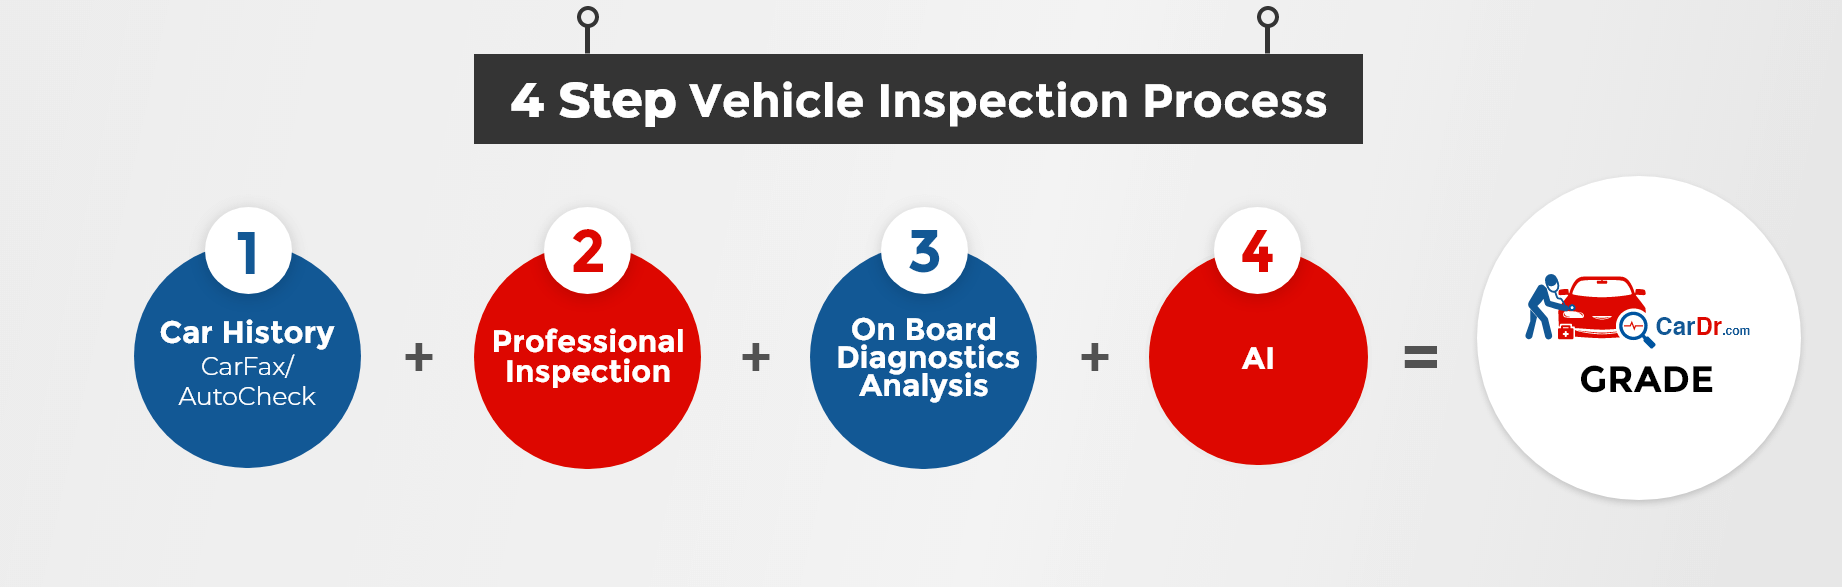 CarDr.com Used Car Inspection Steps